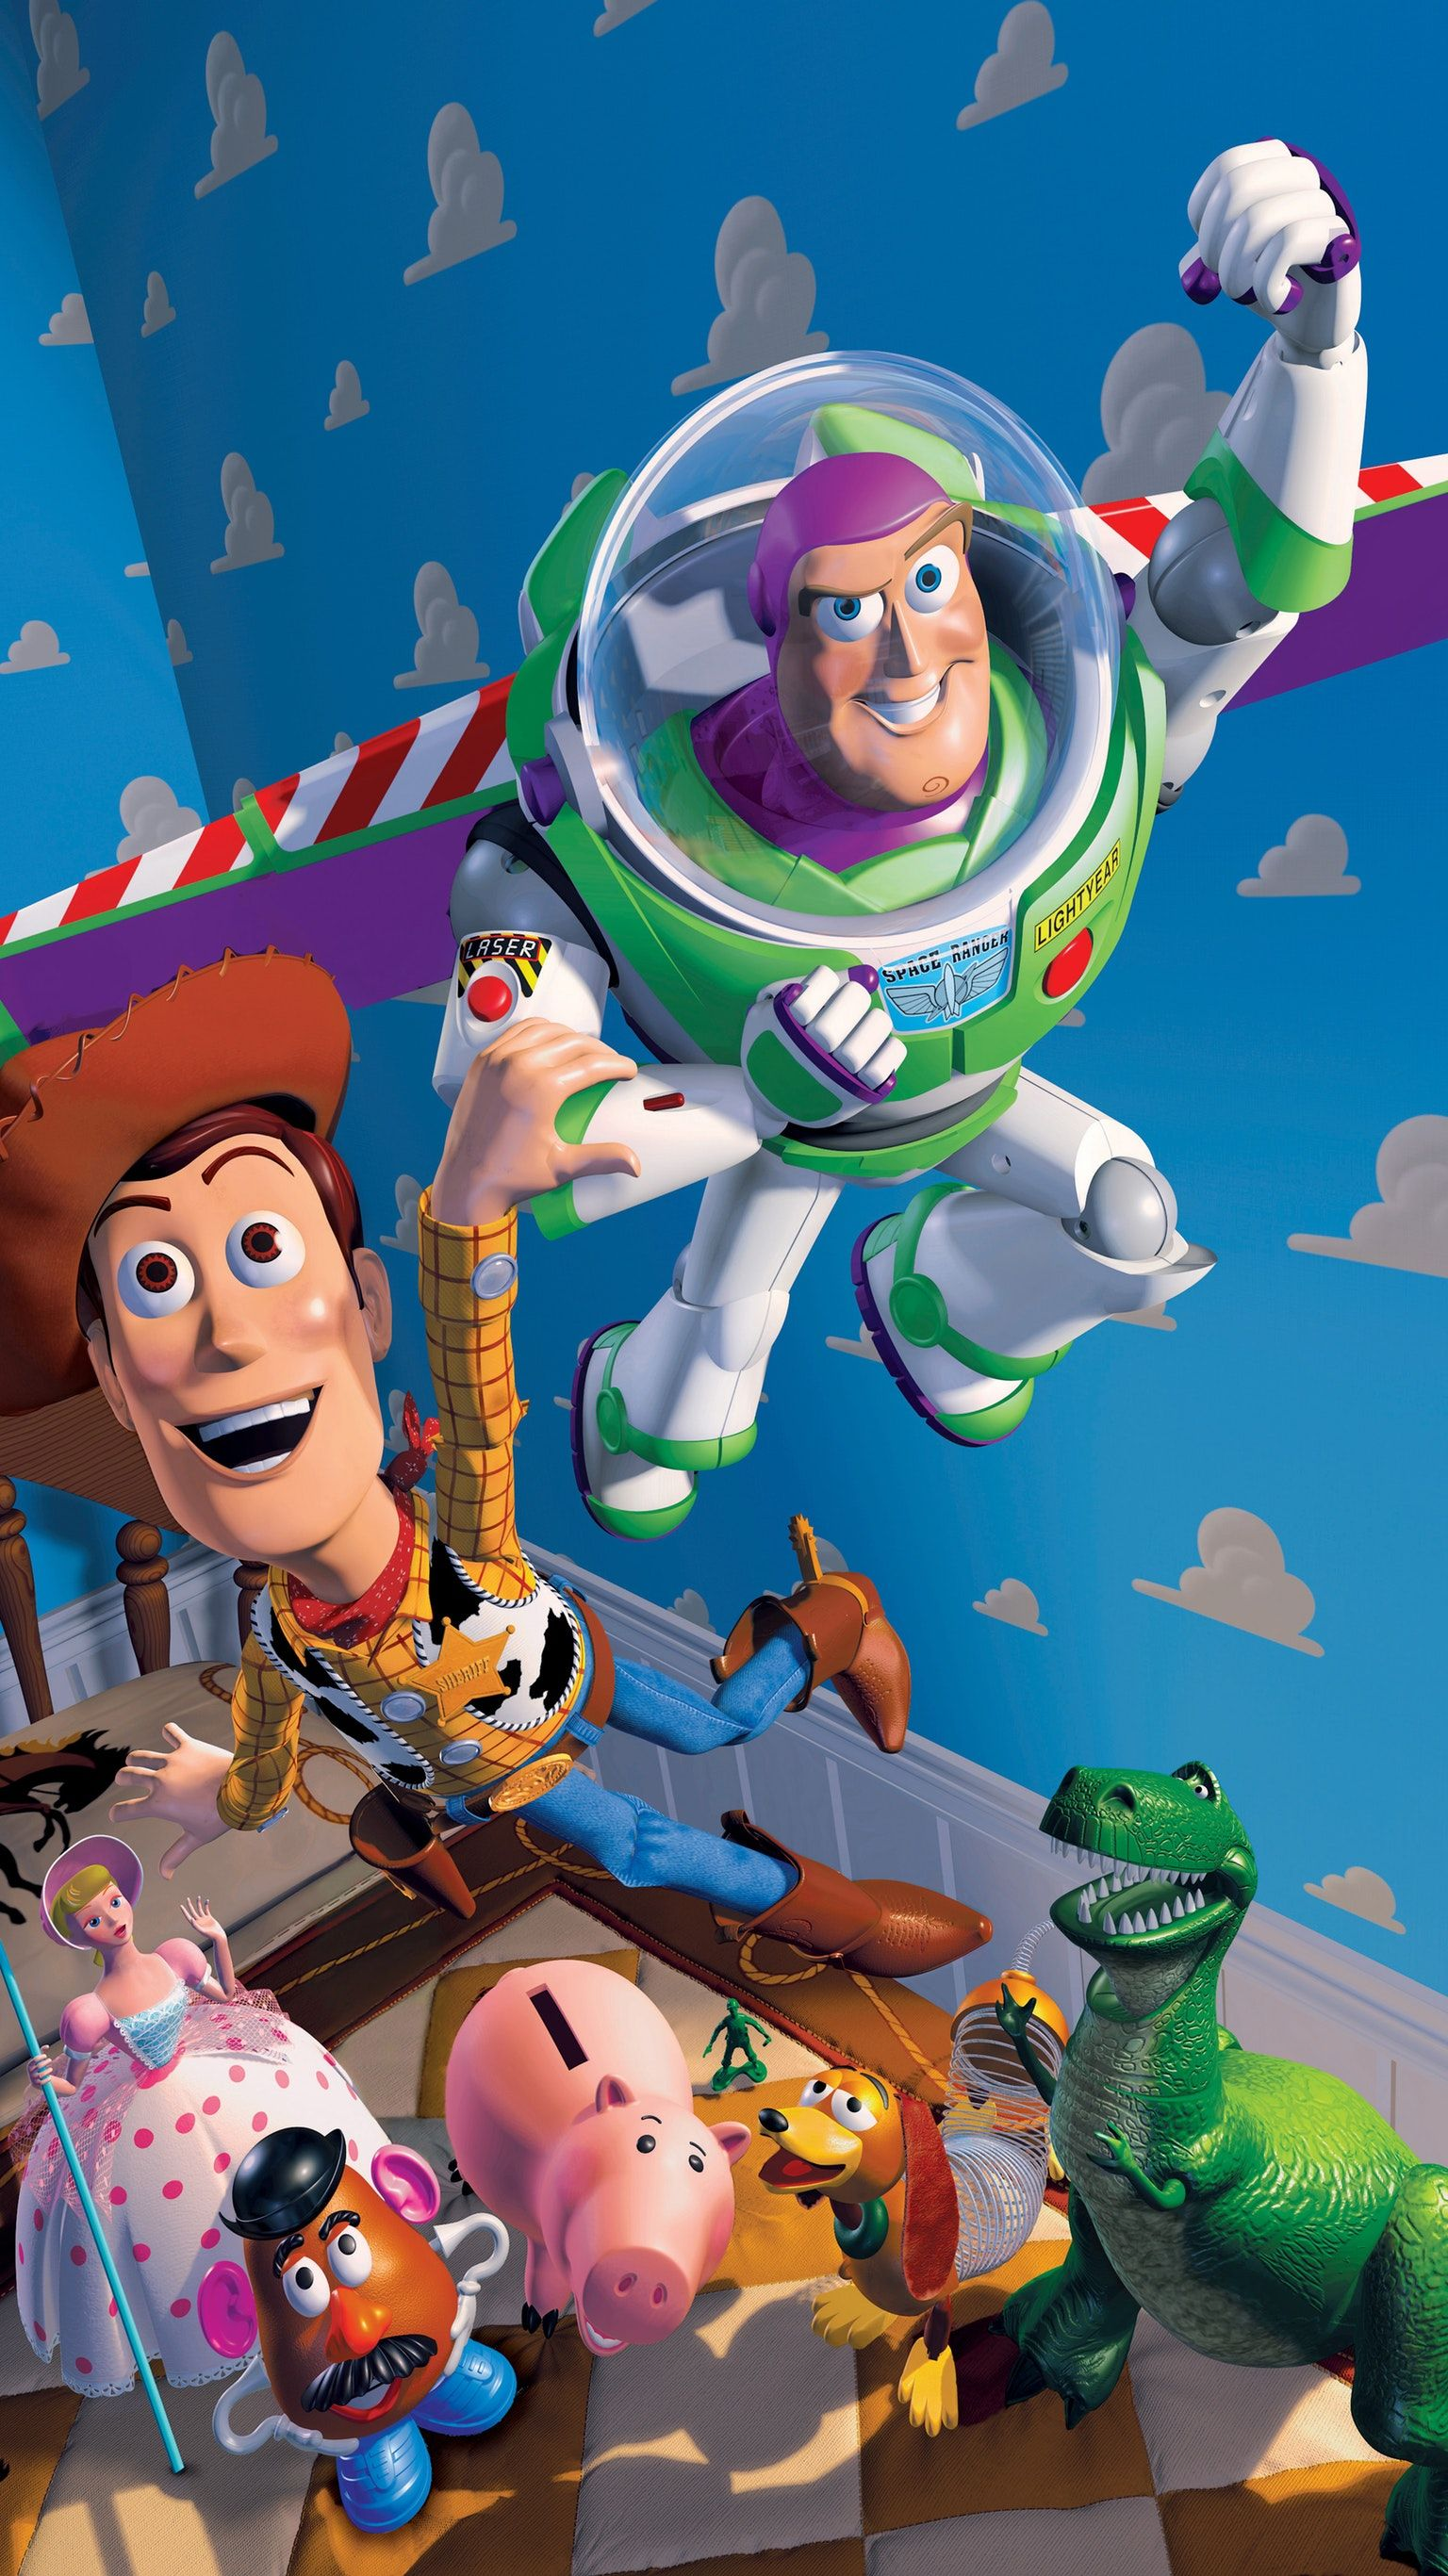 Toy Story 1995 Phone Wallpaper جديد In 2019 Kid Movies